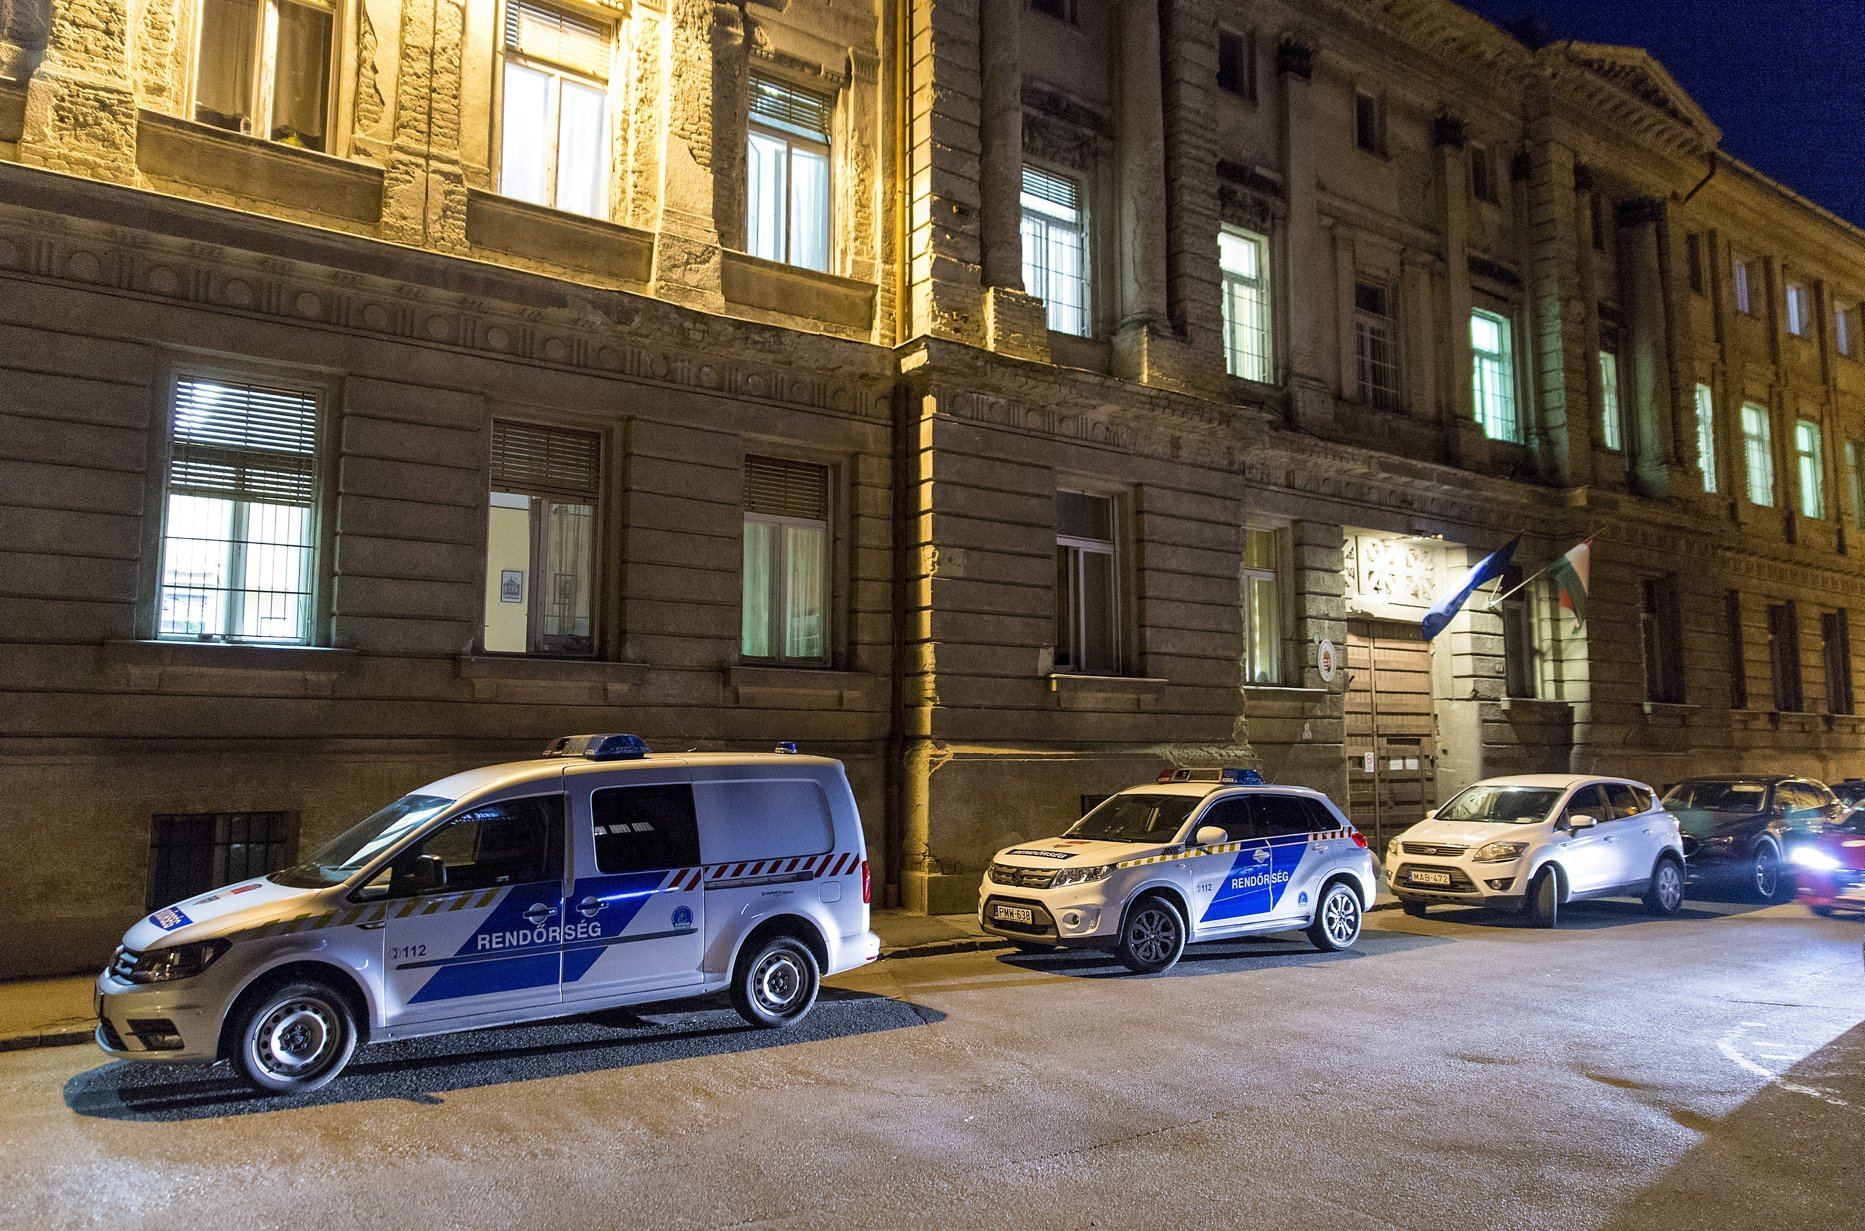 Eighteen Hungarian policemen arrested for not following their duty